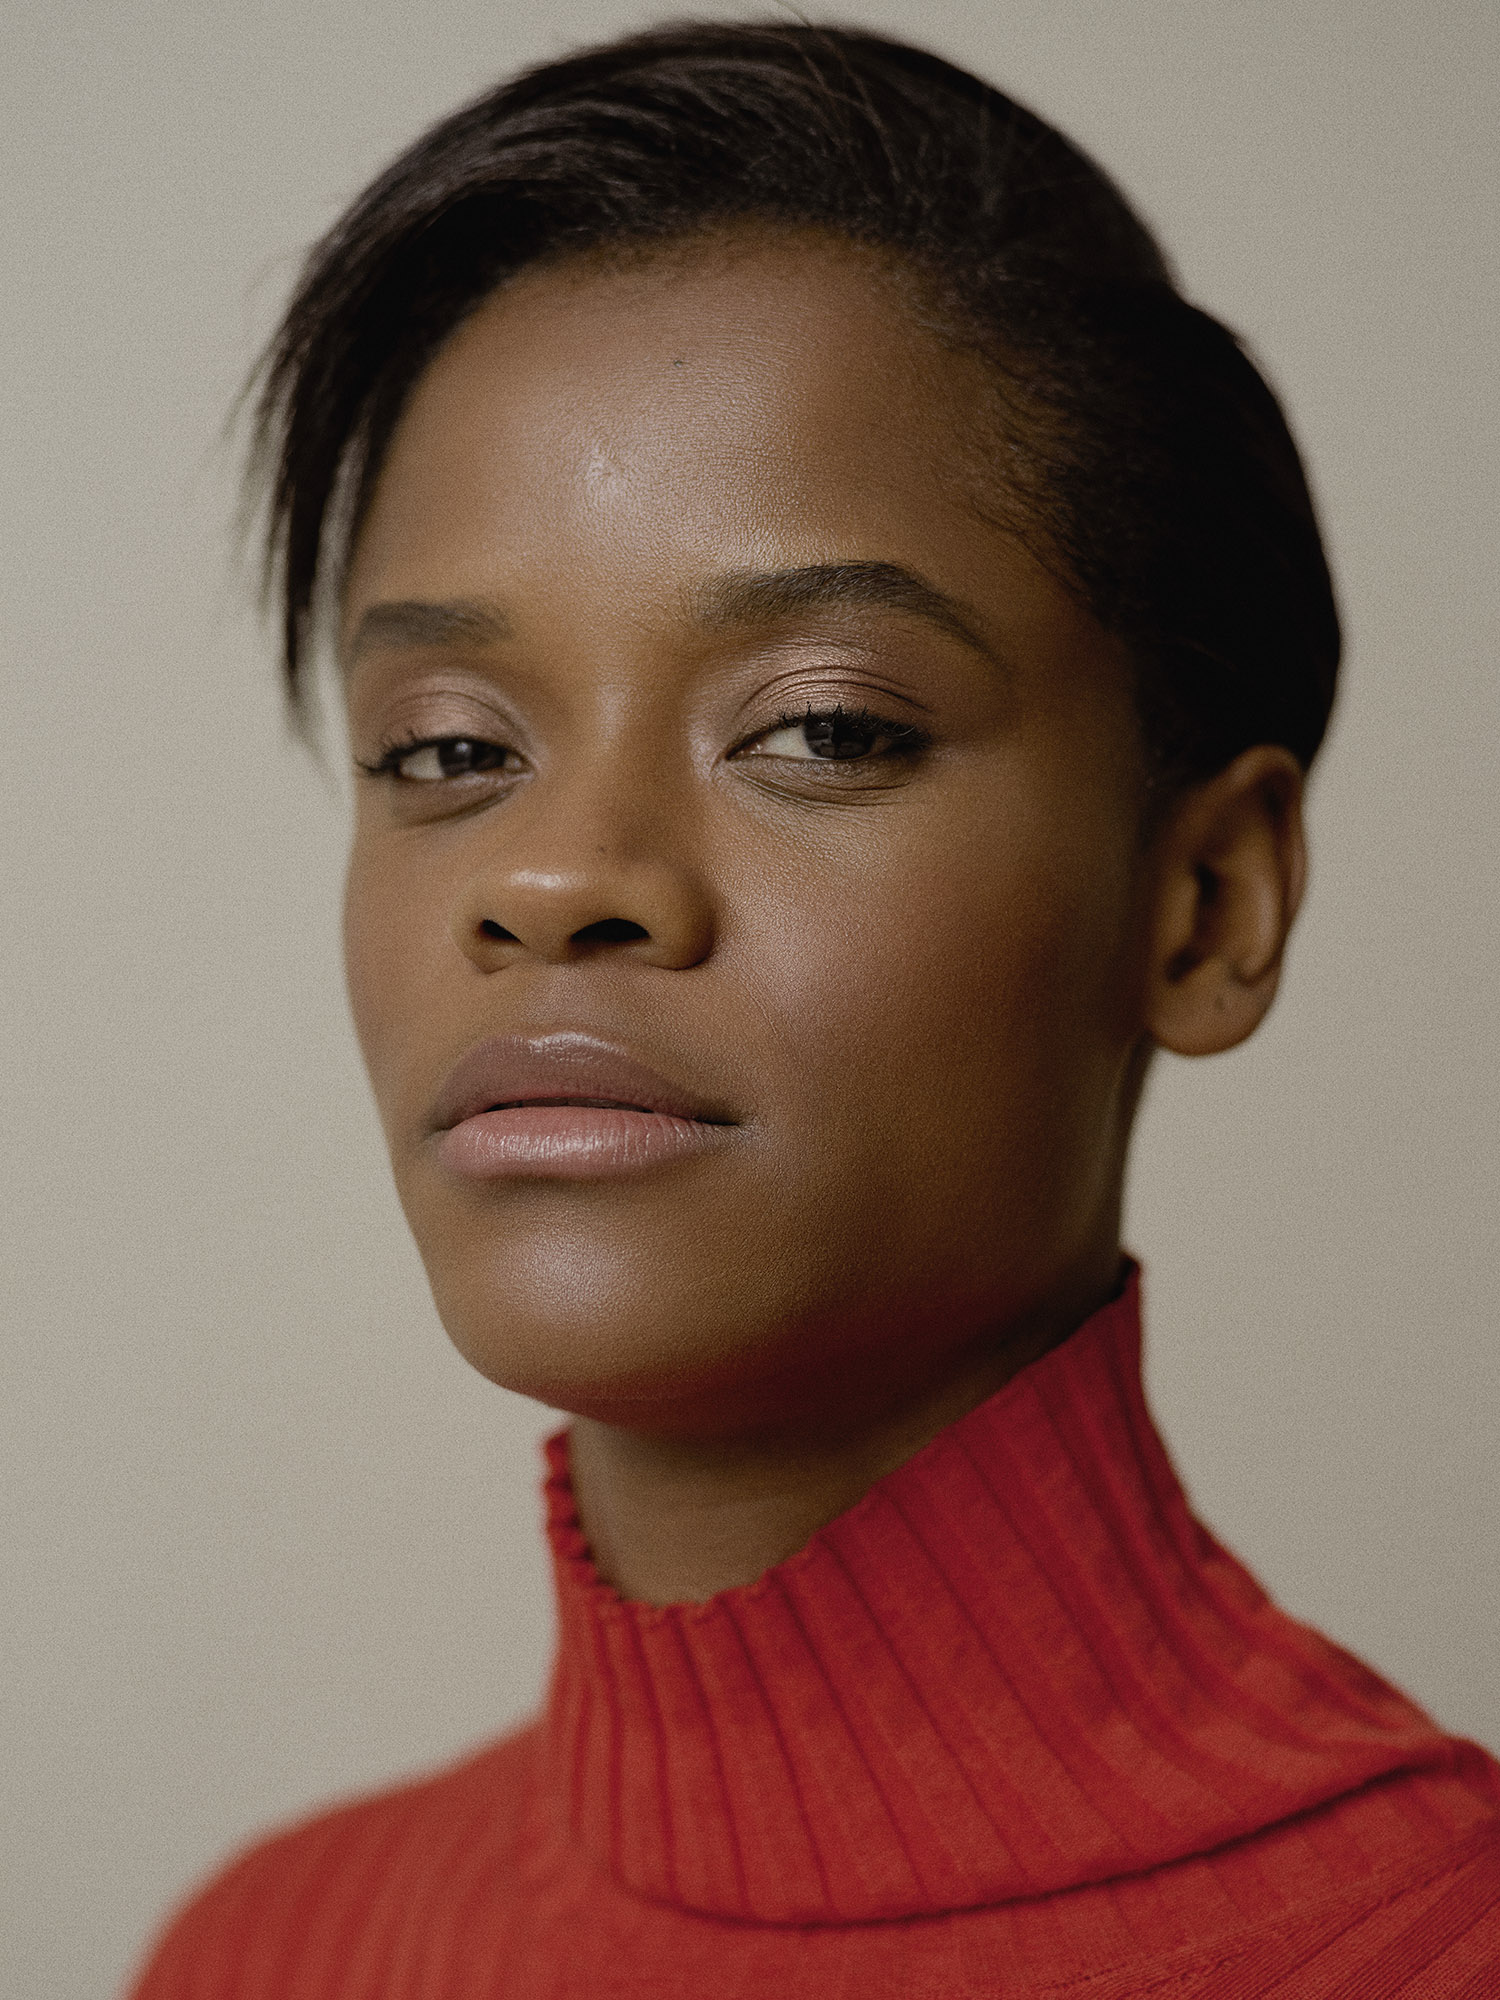 181119_ES_Letitia Wright_06_034_FINAL_RGB.jpg